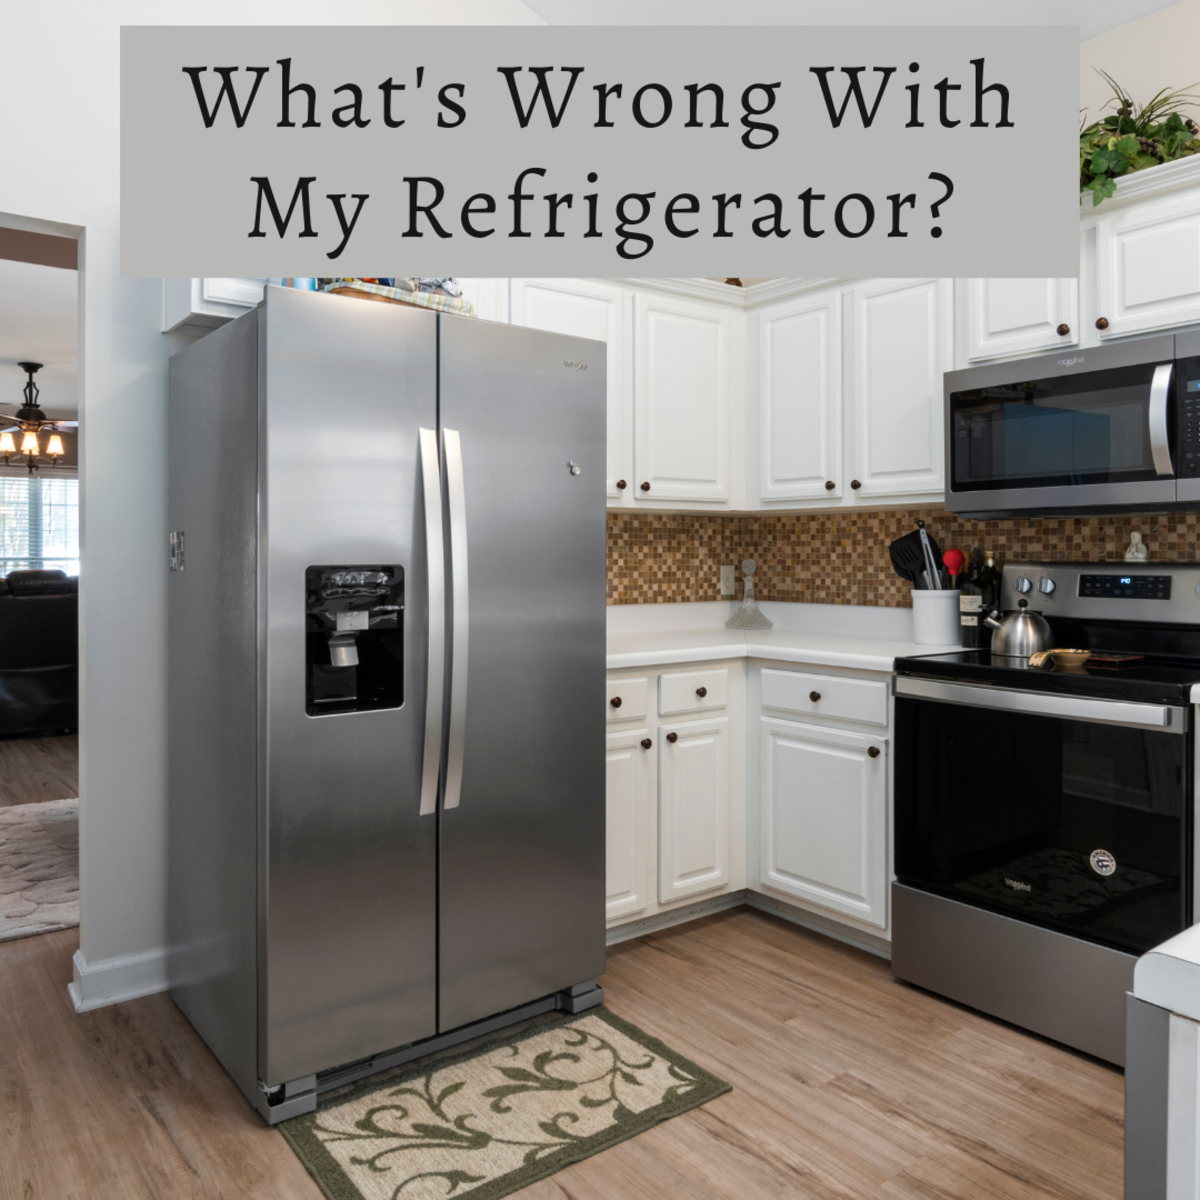 Here are six common reasons that may explain why your refrigerator is malfunctioning.